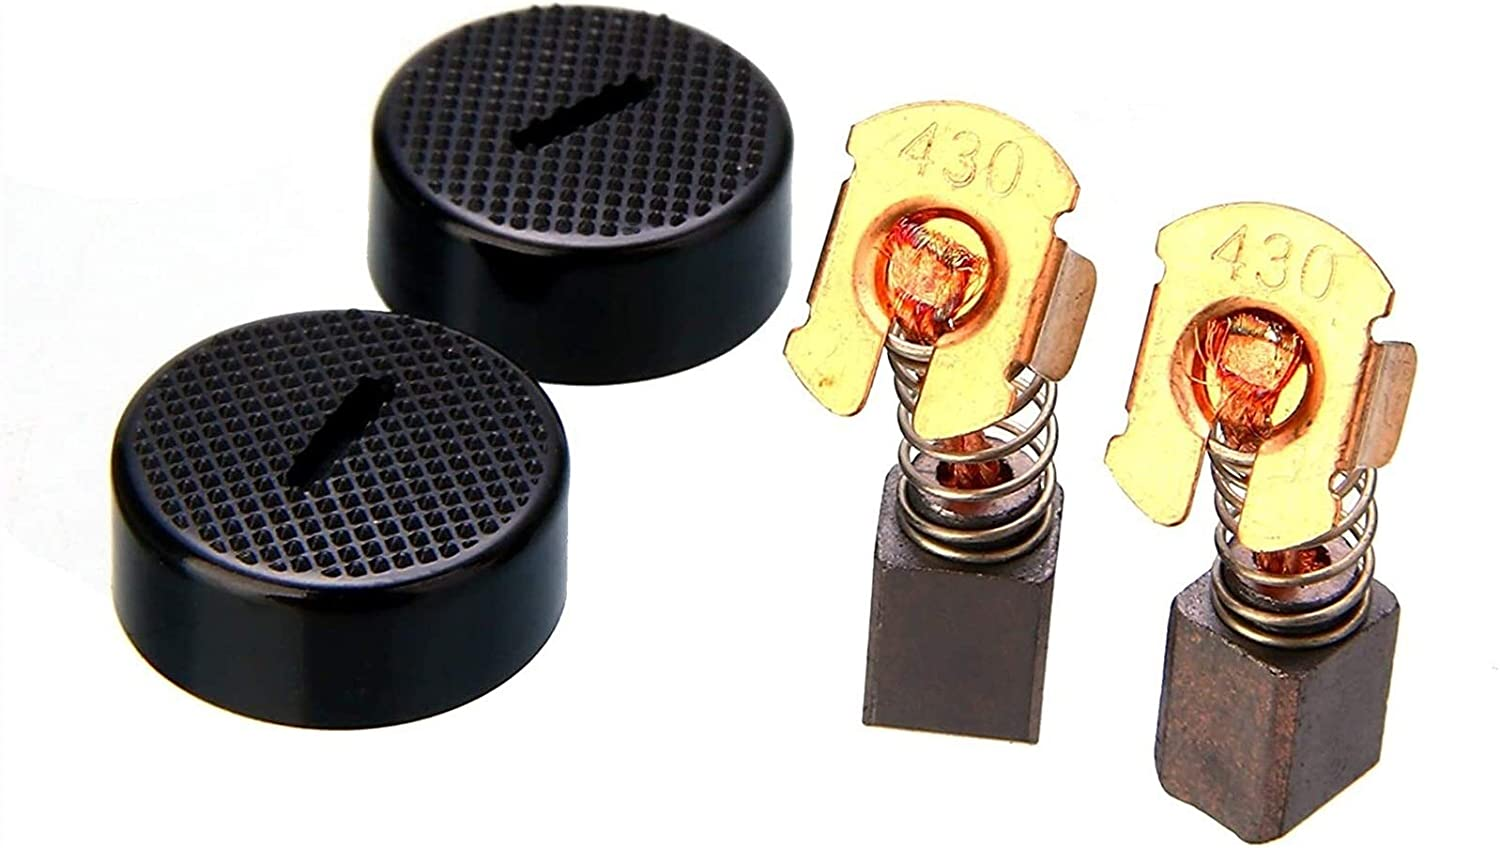 Mechanical Parts Extension Compression Spring 1 Pair Electric Motor Spring Carbon Brushes Replacement for BGA450 BGA452 DGA452 GA400 BGA402 with Cap for Electric Drill Color : As Show